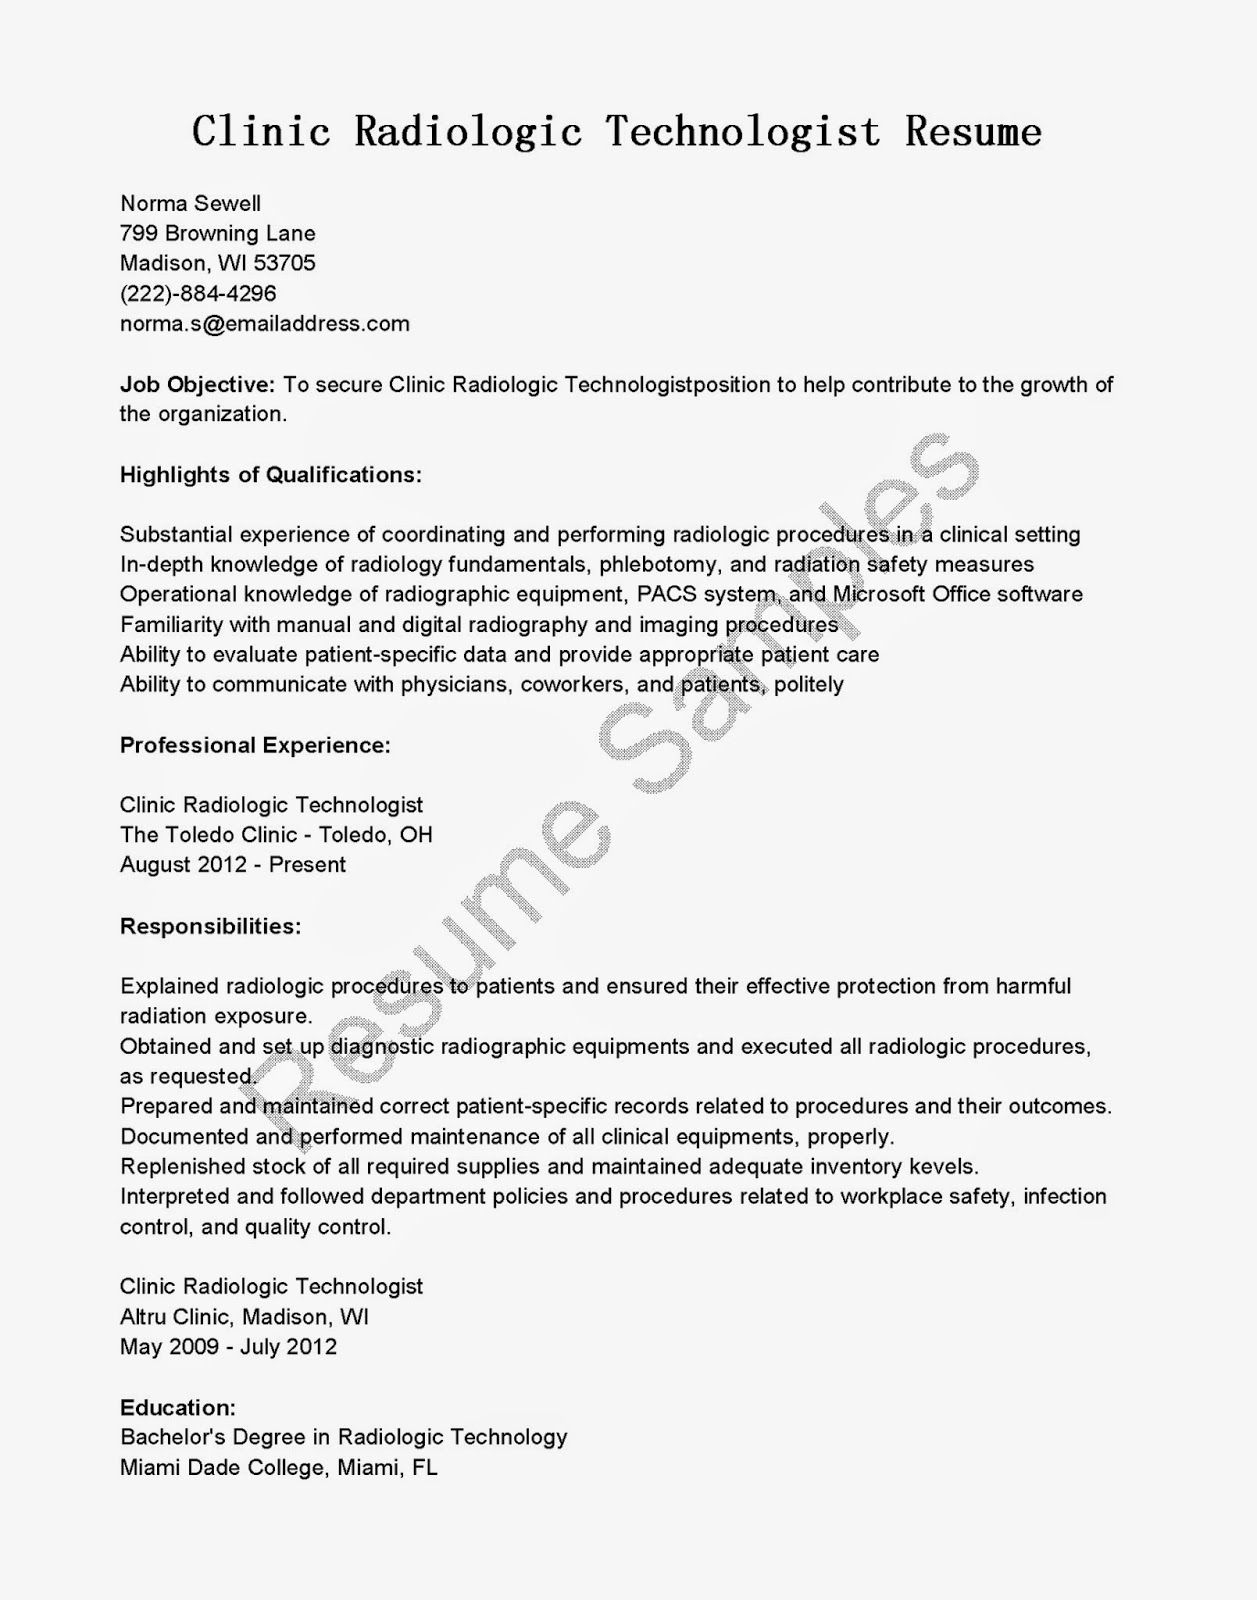 Resume writing service ct